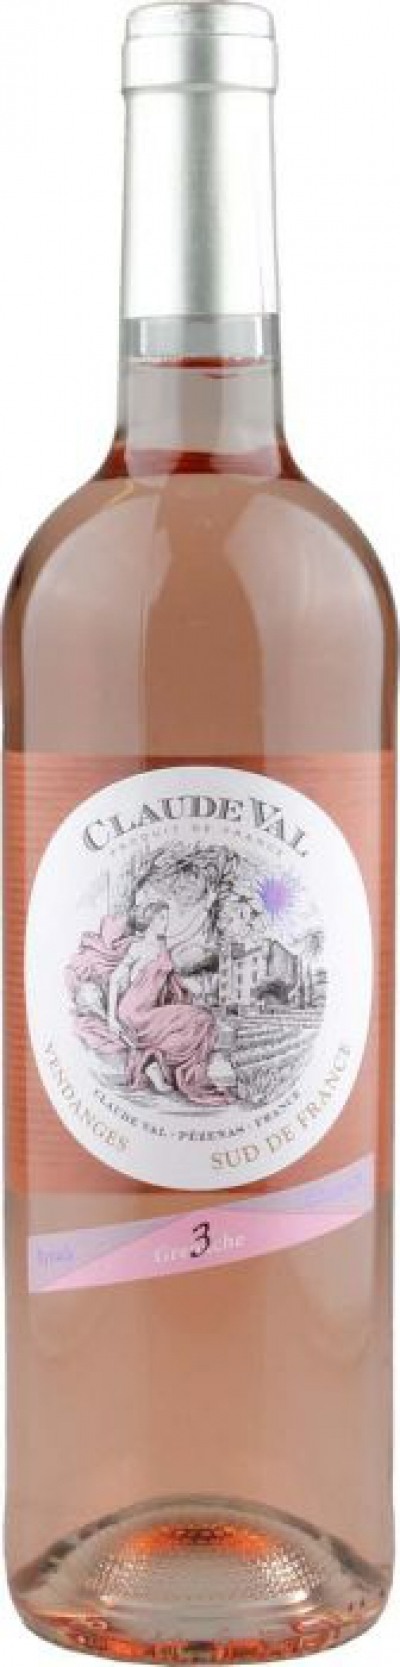 Paul Mas, Claudeval Rosé